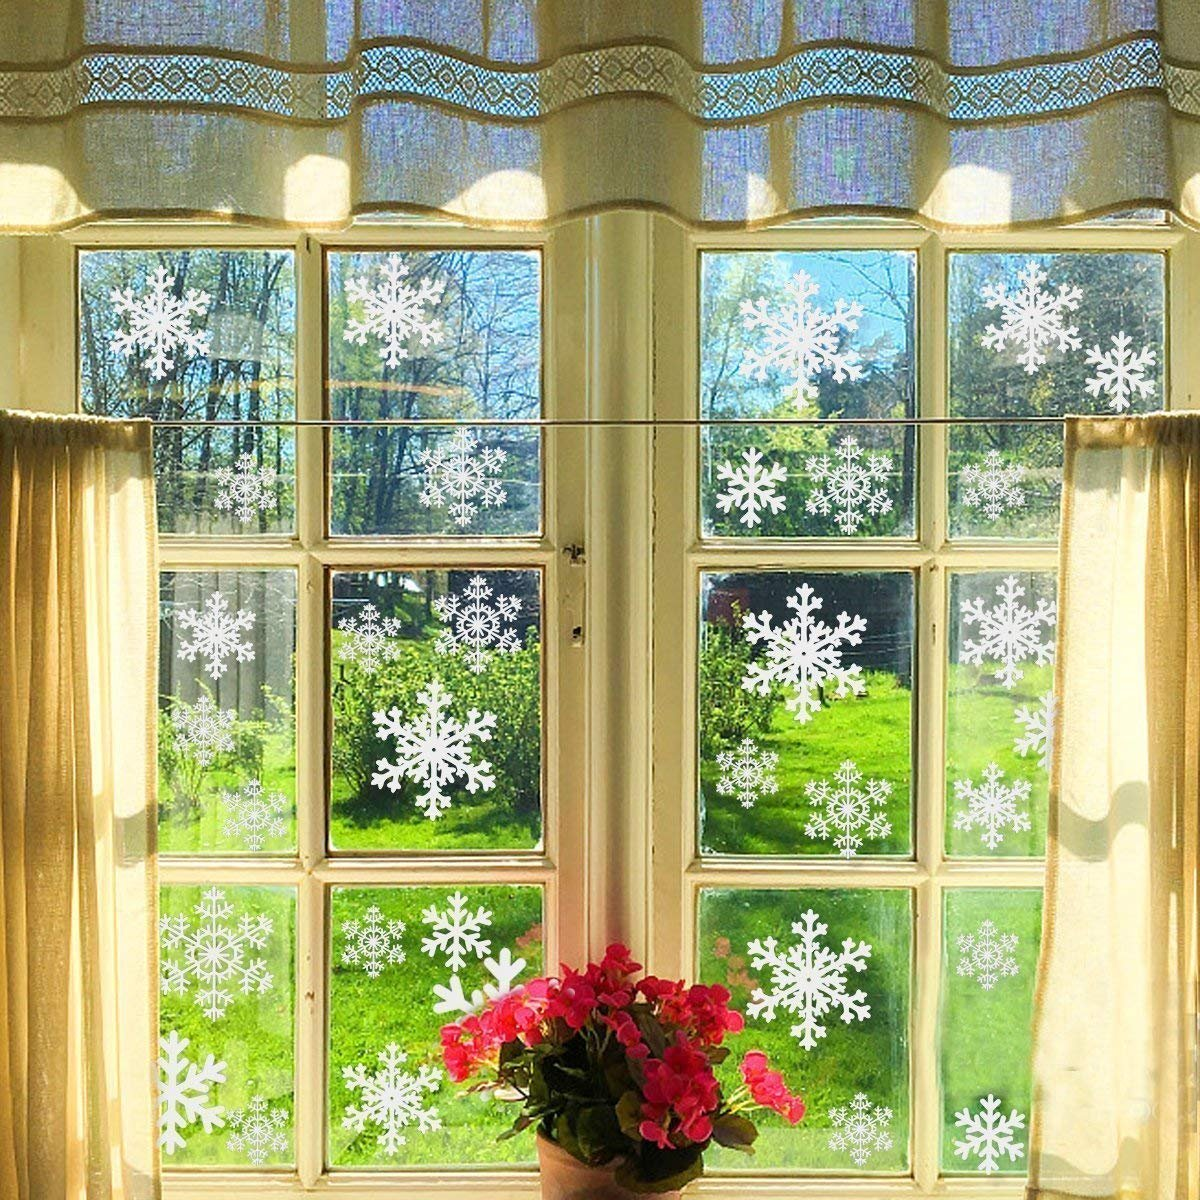 LeeSky 81Pcs White Snowflake Window Clings Christmas Snowflake Sticker Window Decorations -Christmas Holiday Home Decor WSS-037